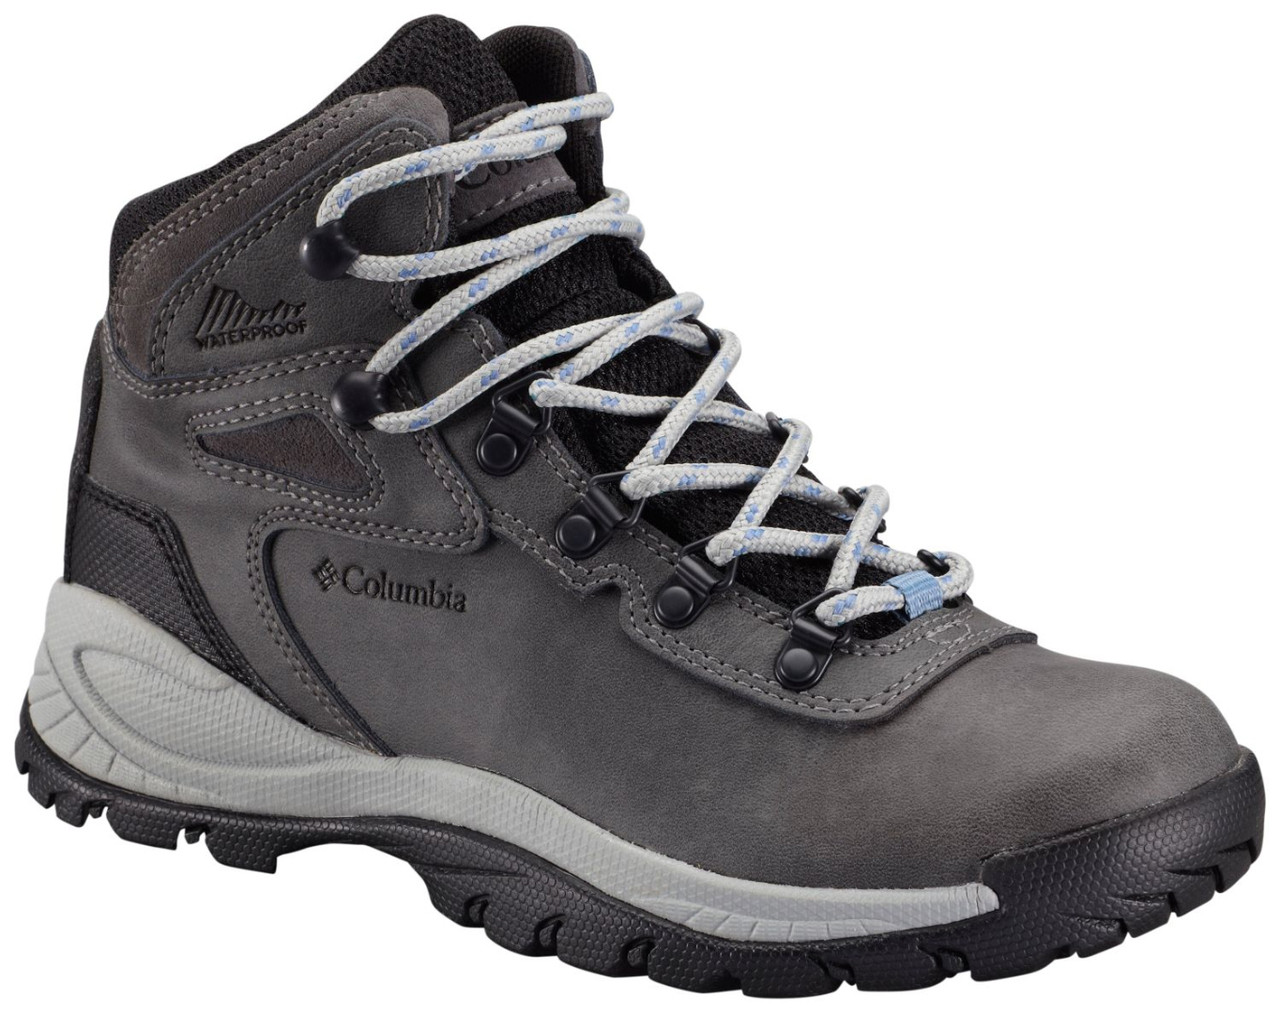 Best Hiking Shoes For Africa